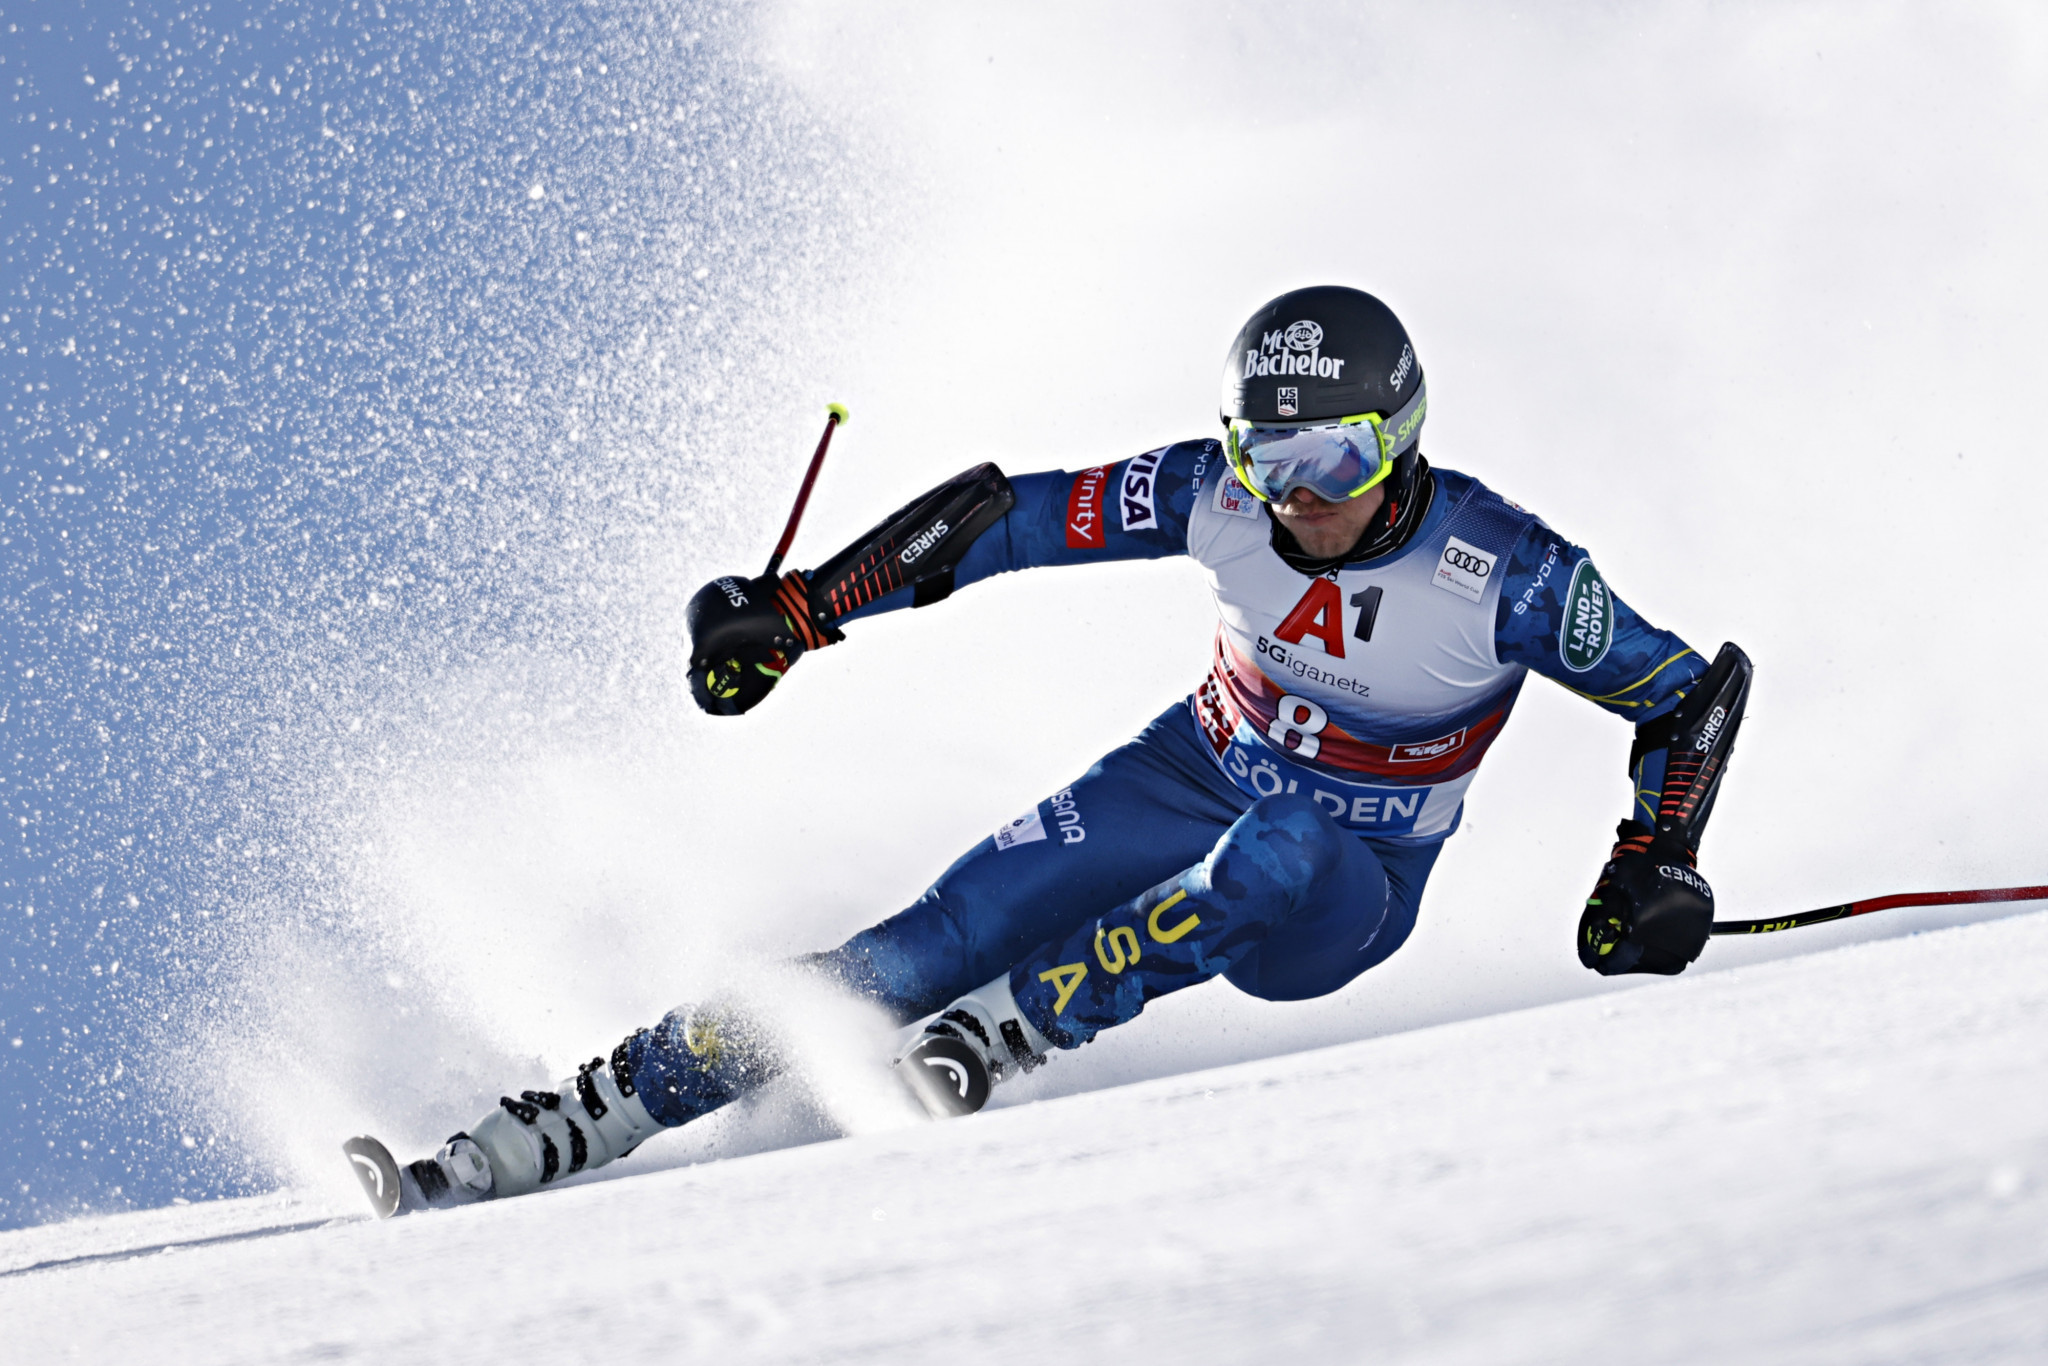 Athletes will be banned from using fluorinated ski wax in the United States at non-FIS events in the 2020-2021 season ©Getty Images